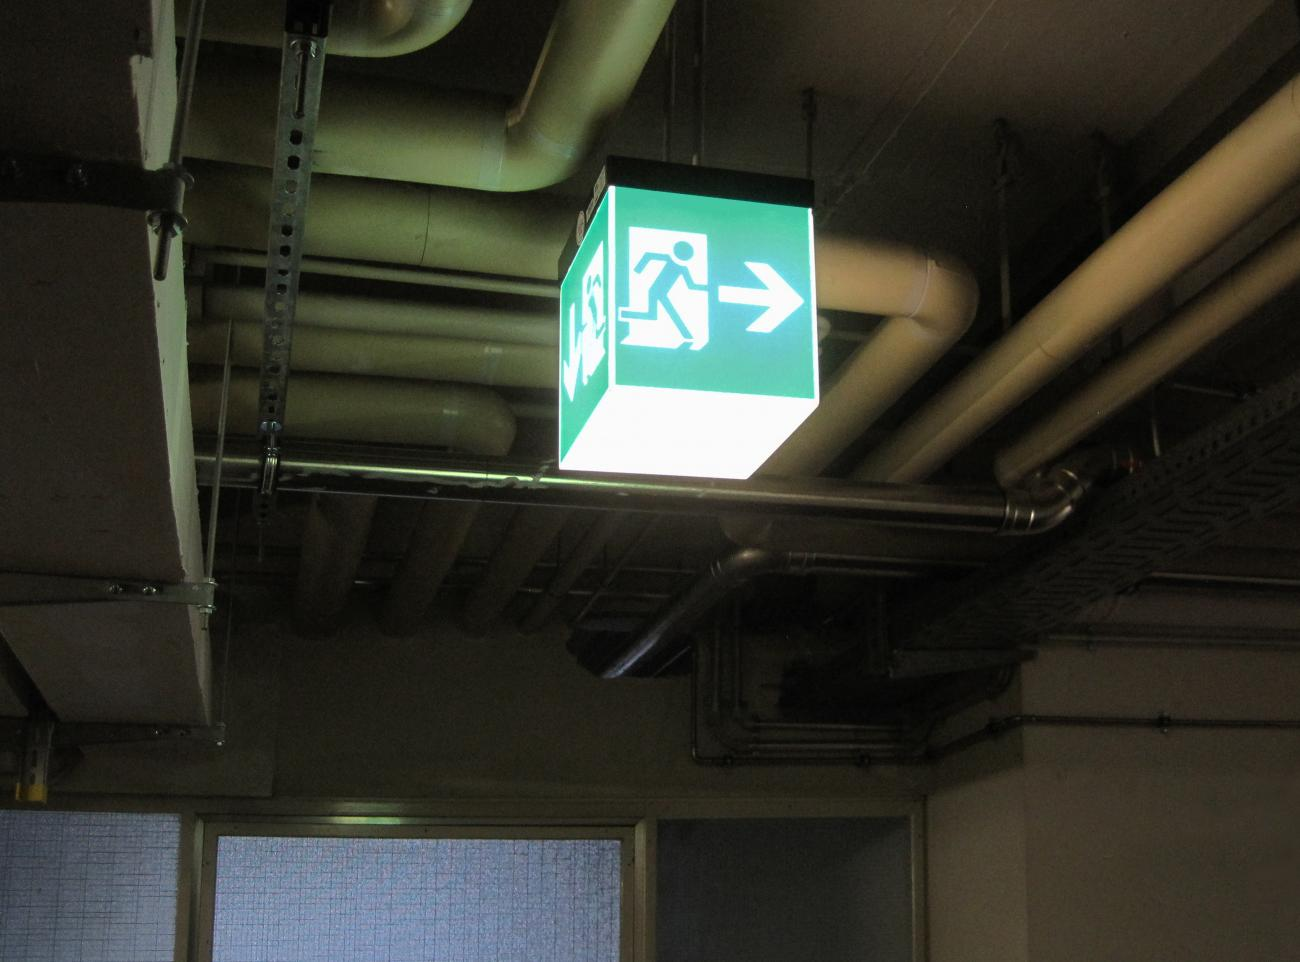 escape routes signage